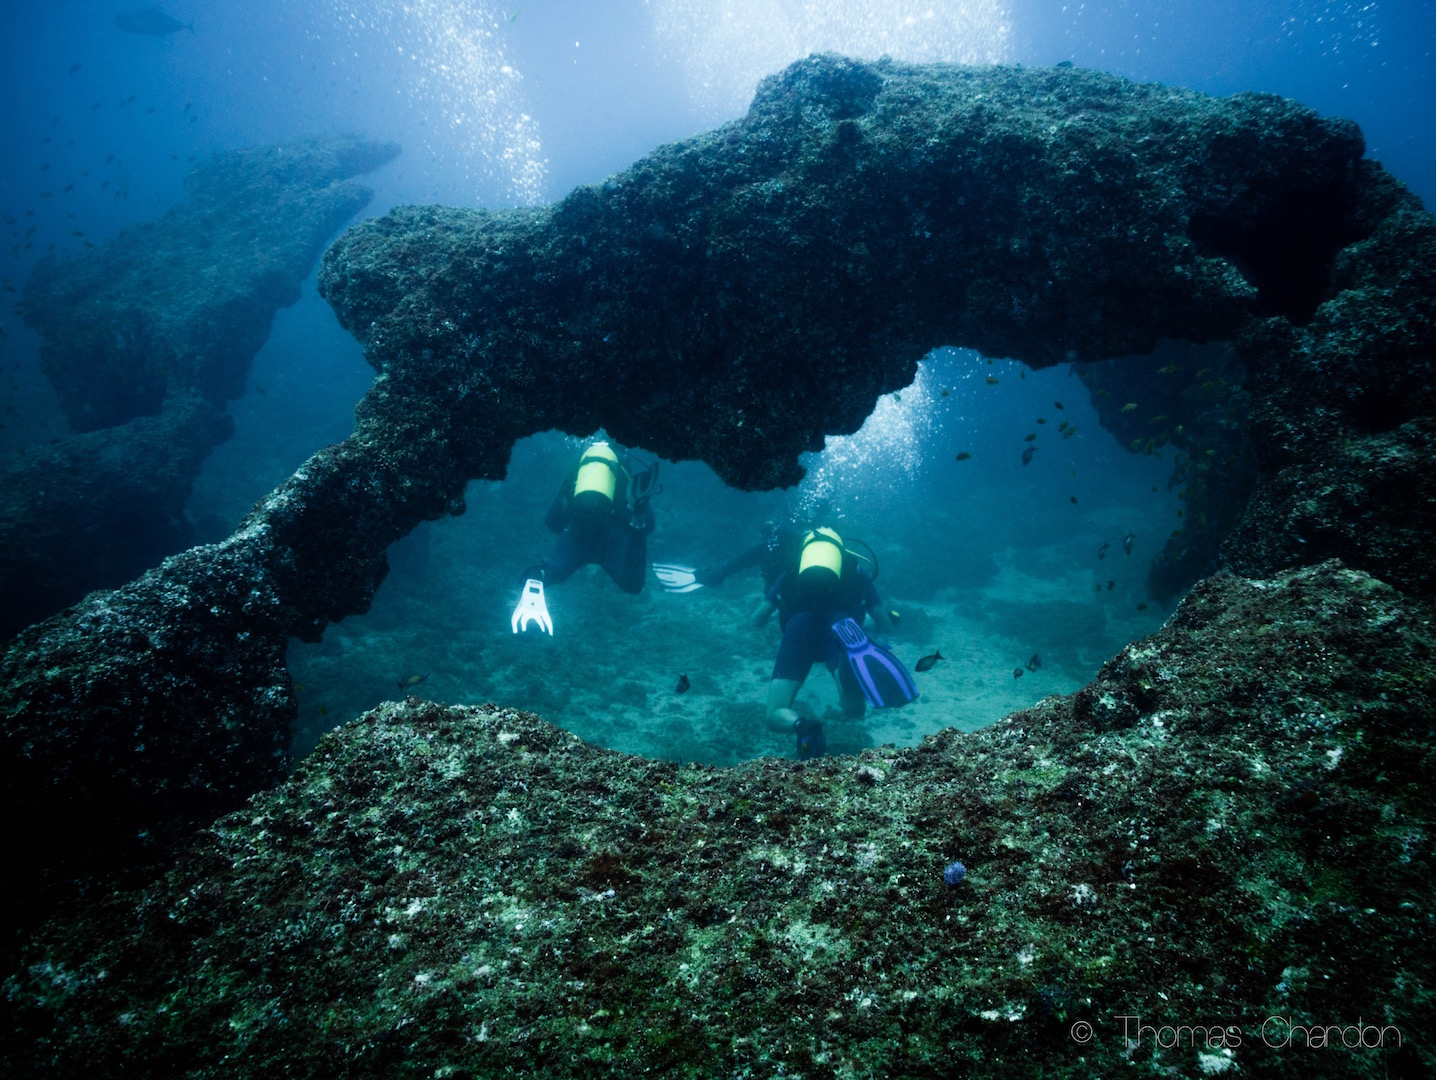 Tofo dive sites are beautiful